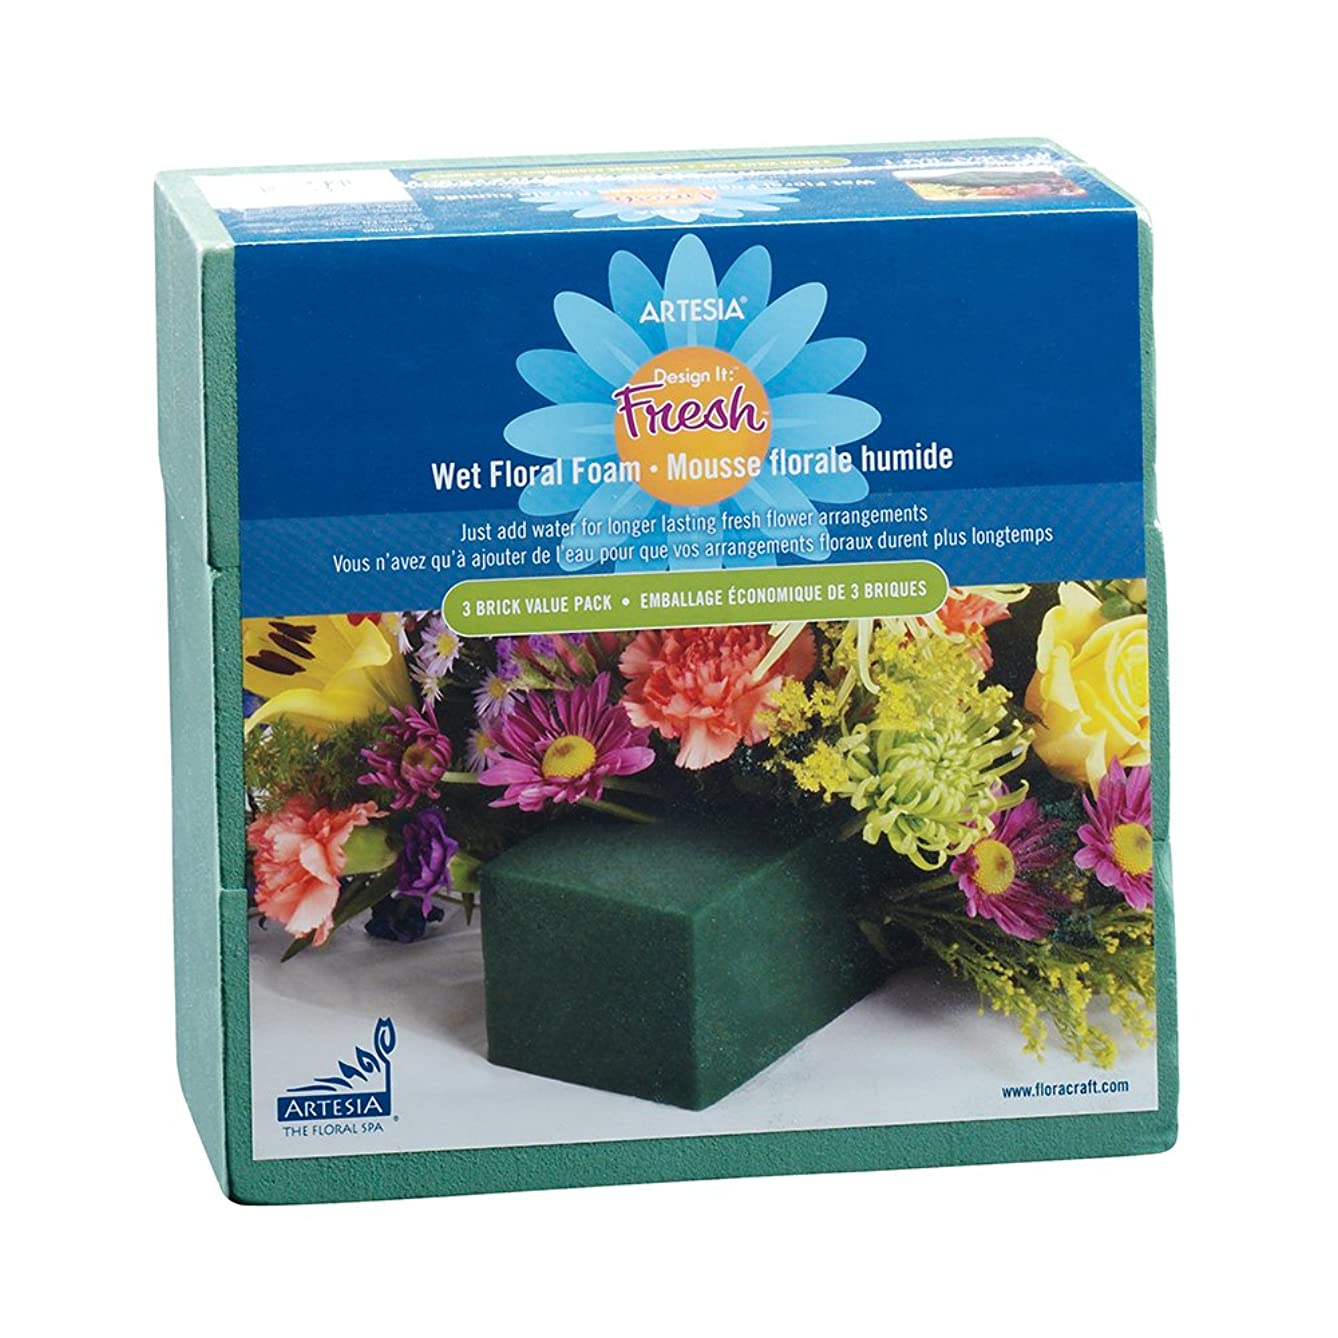 FloraCraft Floral Wet Foam 3 Piece Brick 2.8 Inch x 3.8 Inch x 8.8 Inch Green